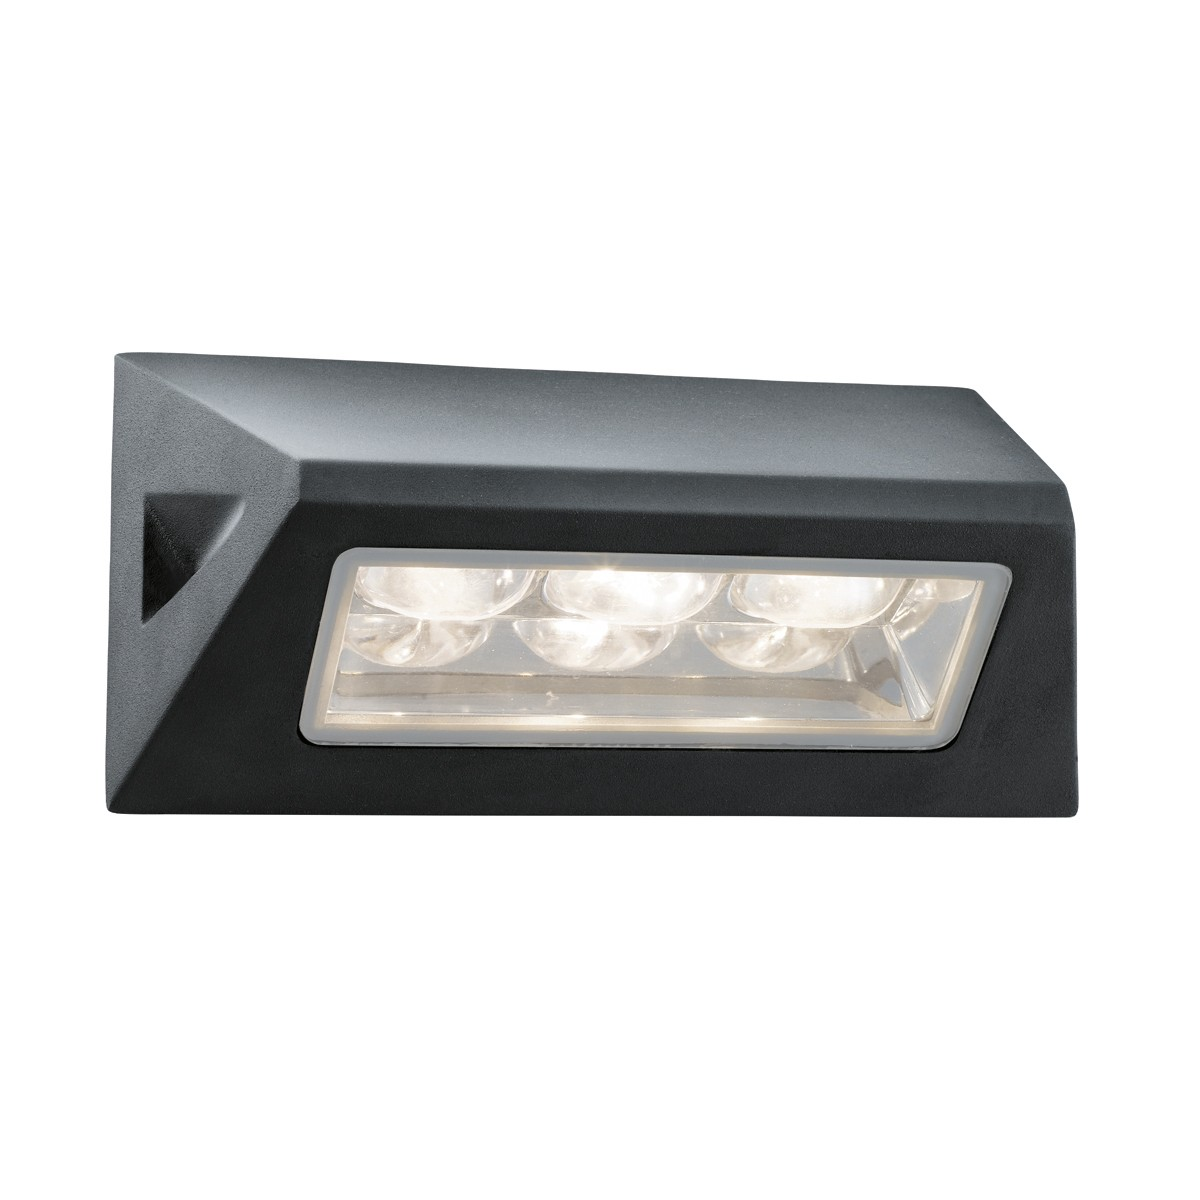 Led outdoor fittings product tags stanways stoves and lights